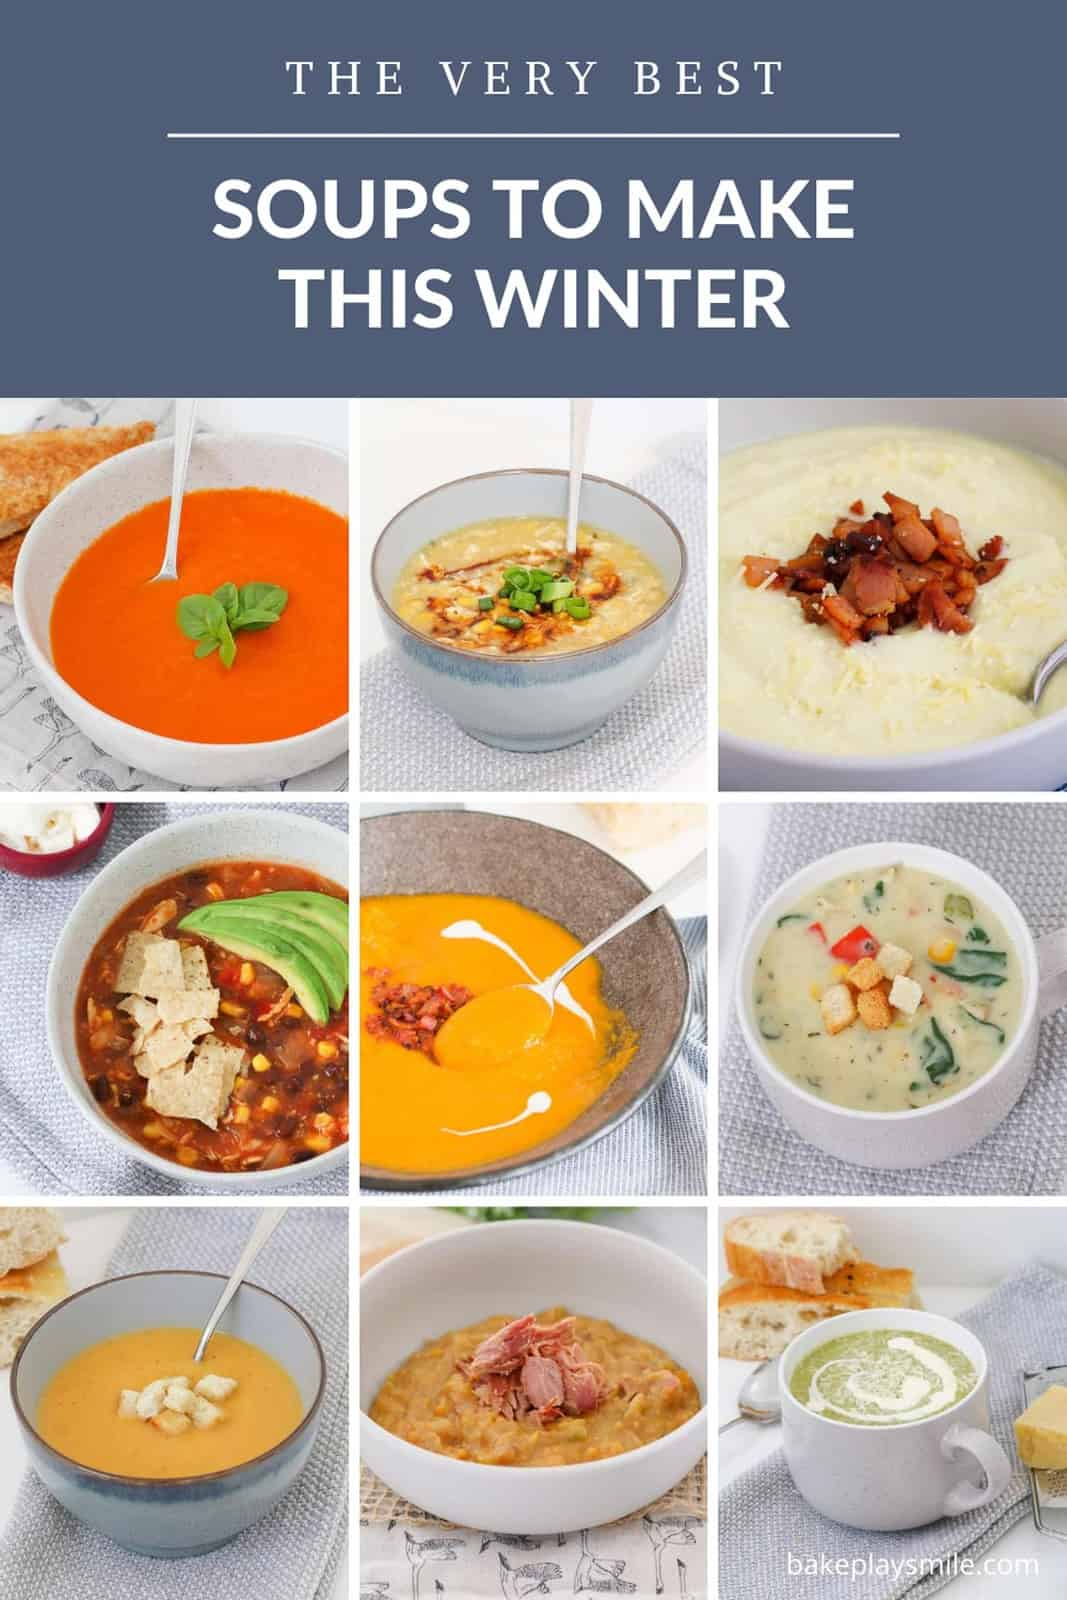 The Best Soup Recipes To Make This Winter Bake Play Smile